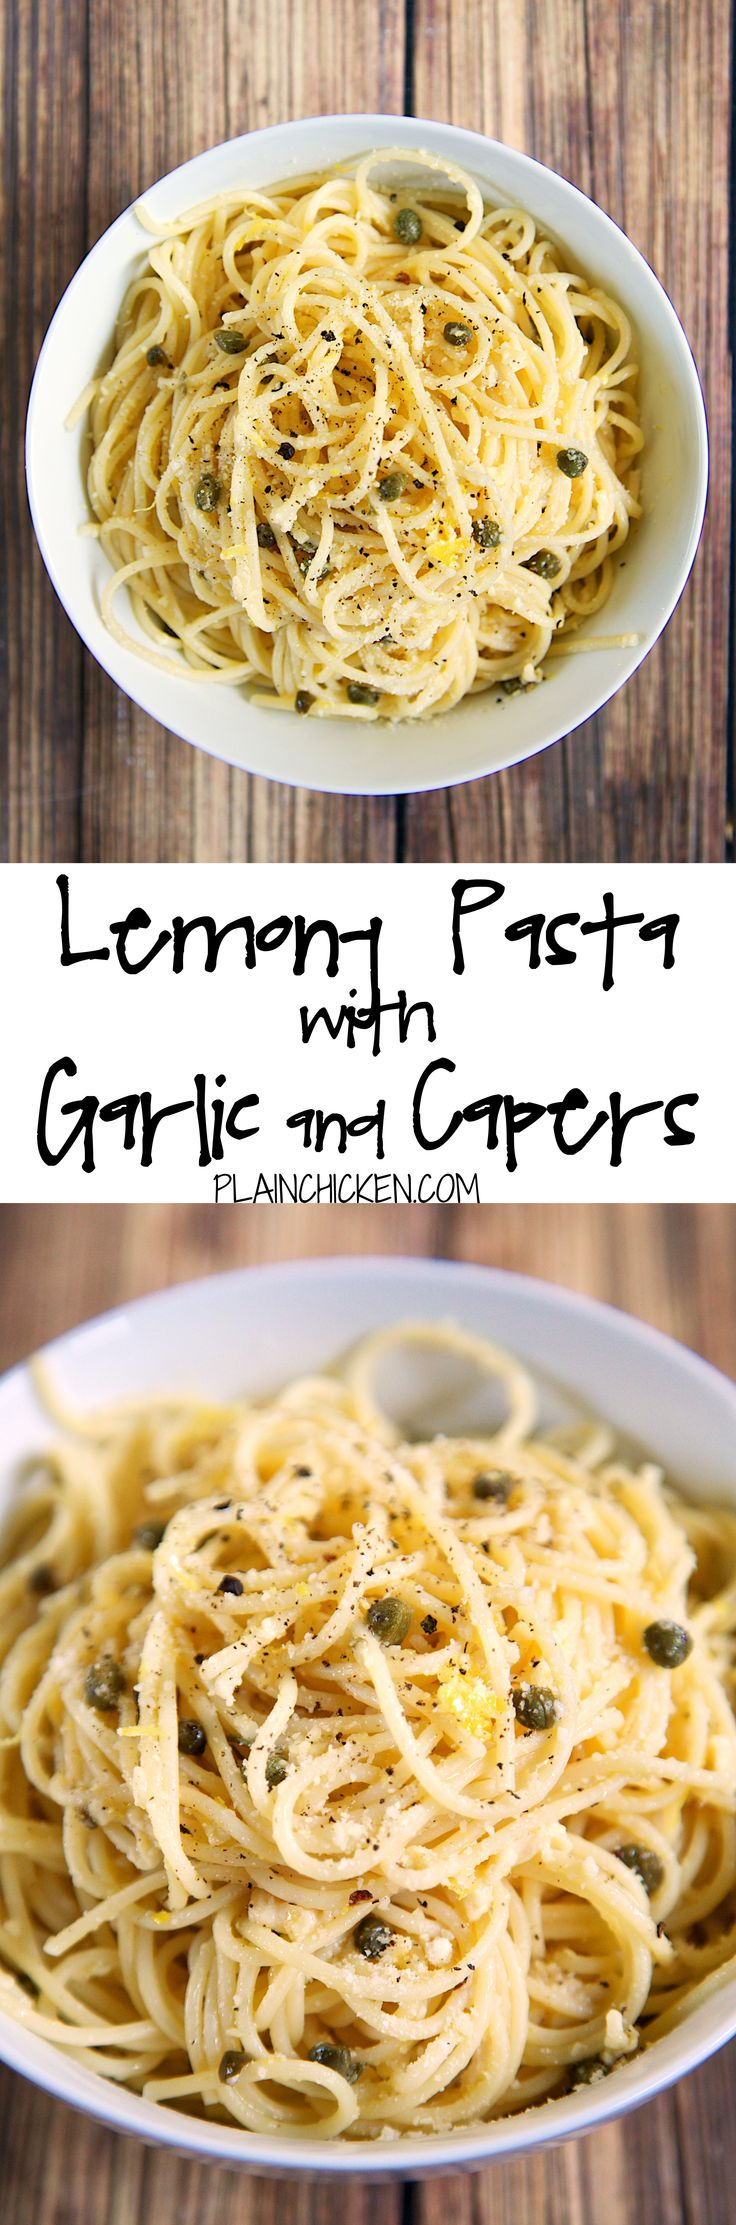 Lemony Pasta with Garlic and Capers recipe – quick pasta dish tossed with olive oil, lemon, garlic, capers and parmesan –